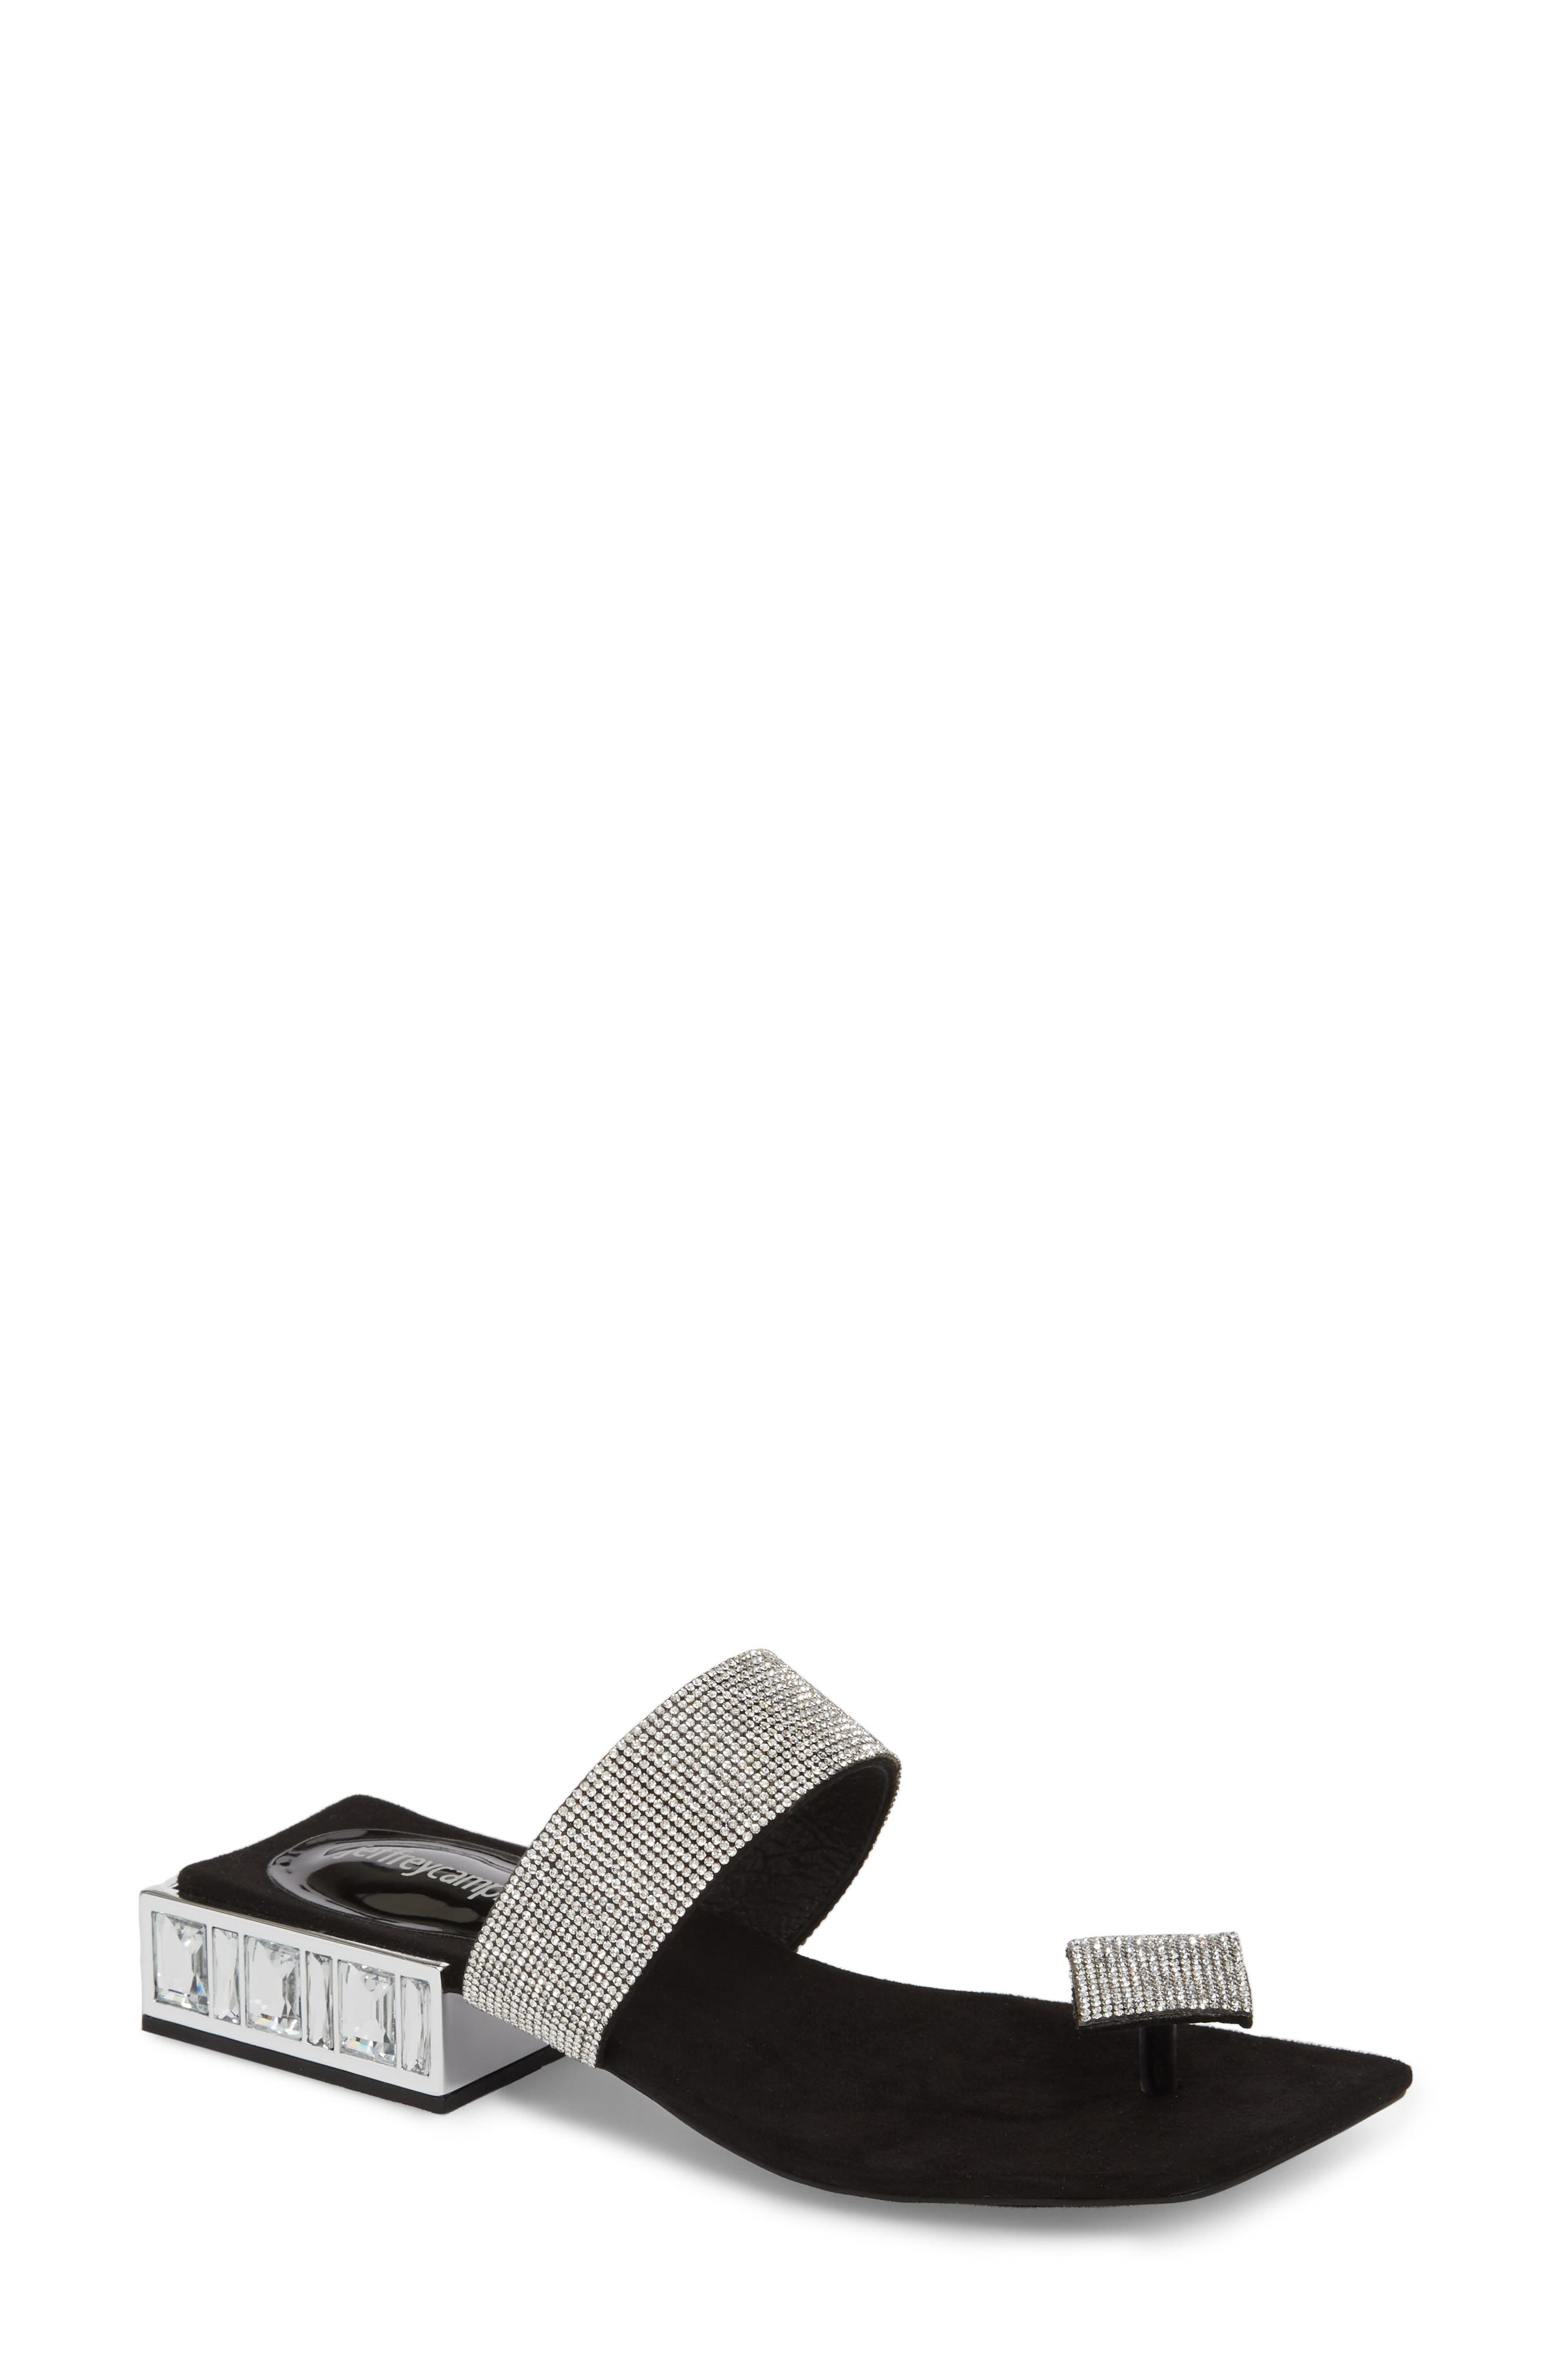 Alise Embellished Sandal,                             Main thumbnail 1, color,                             BLACK SUEDE/ SILVER